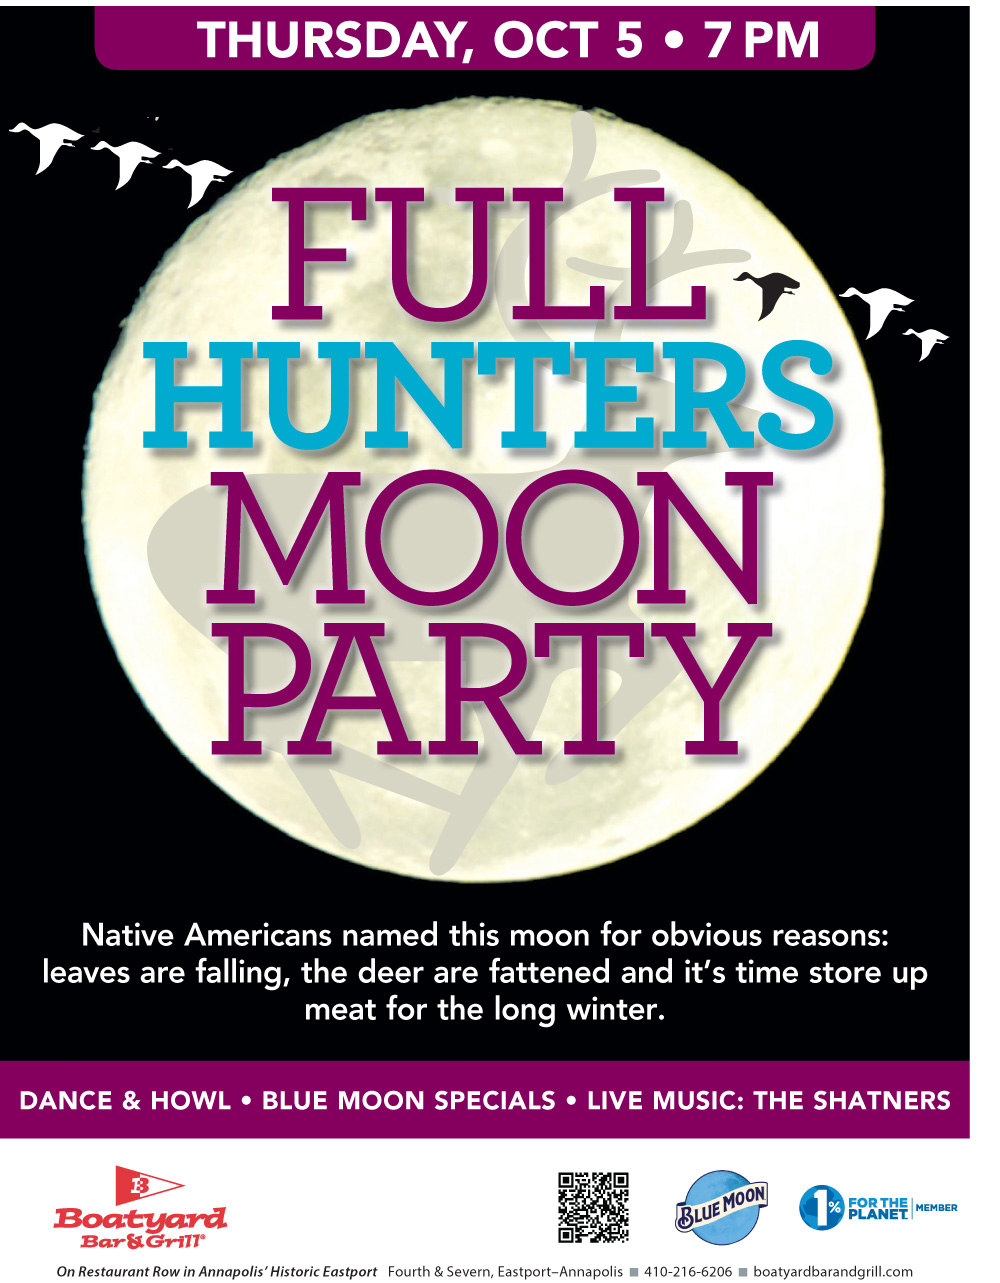 Full Moon Party, Boatyard Bar & Grill, The Shatners, drink specials